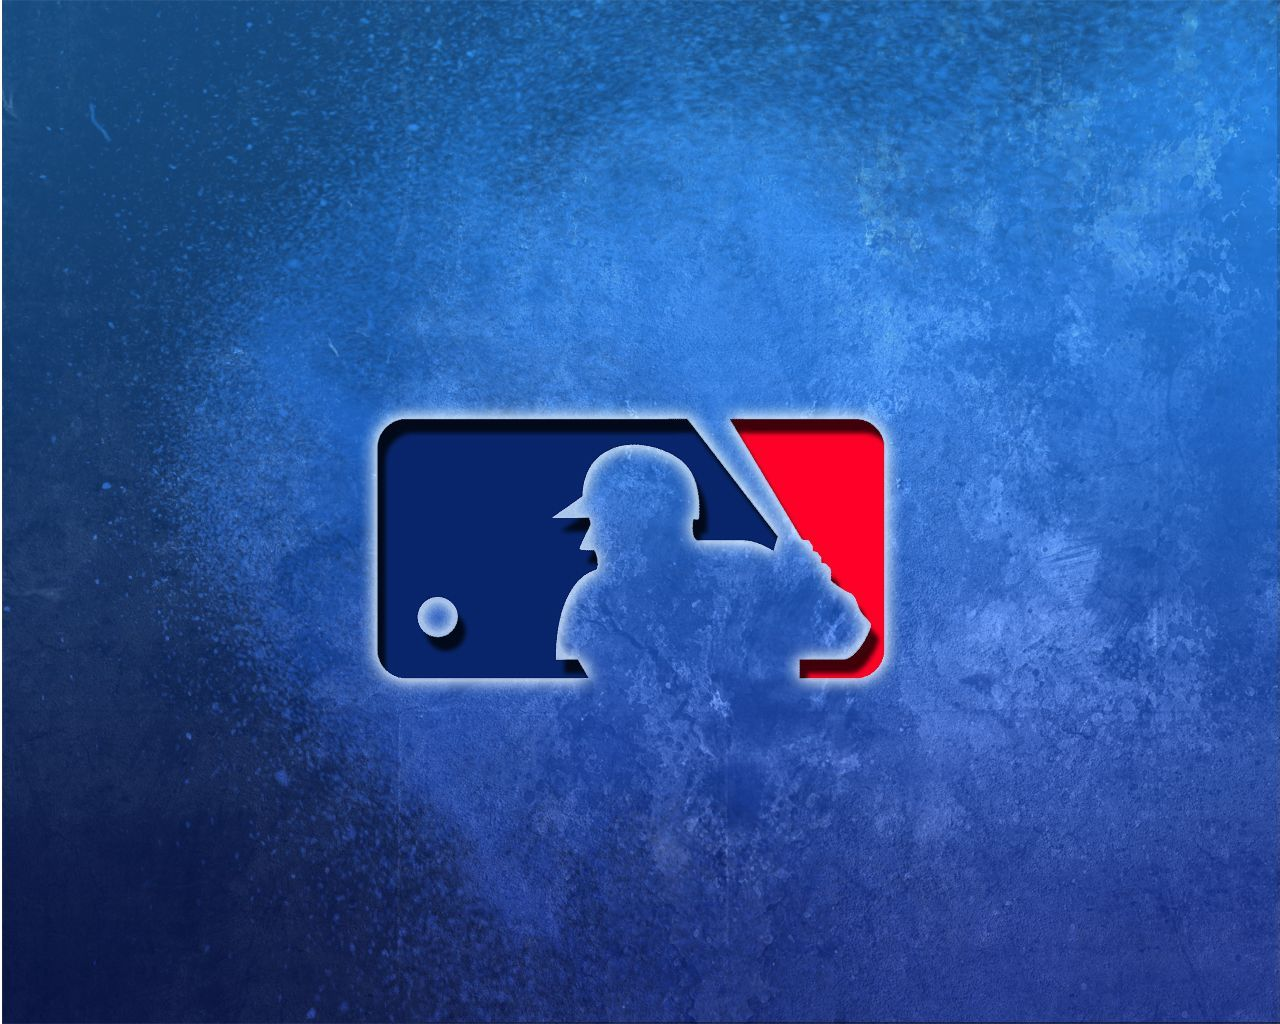 Mlb Wallpapers Wallpaper Cave Fondos De Deportes Fotos De